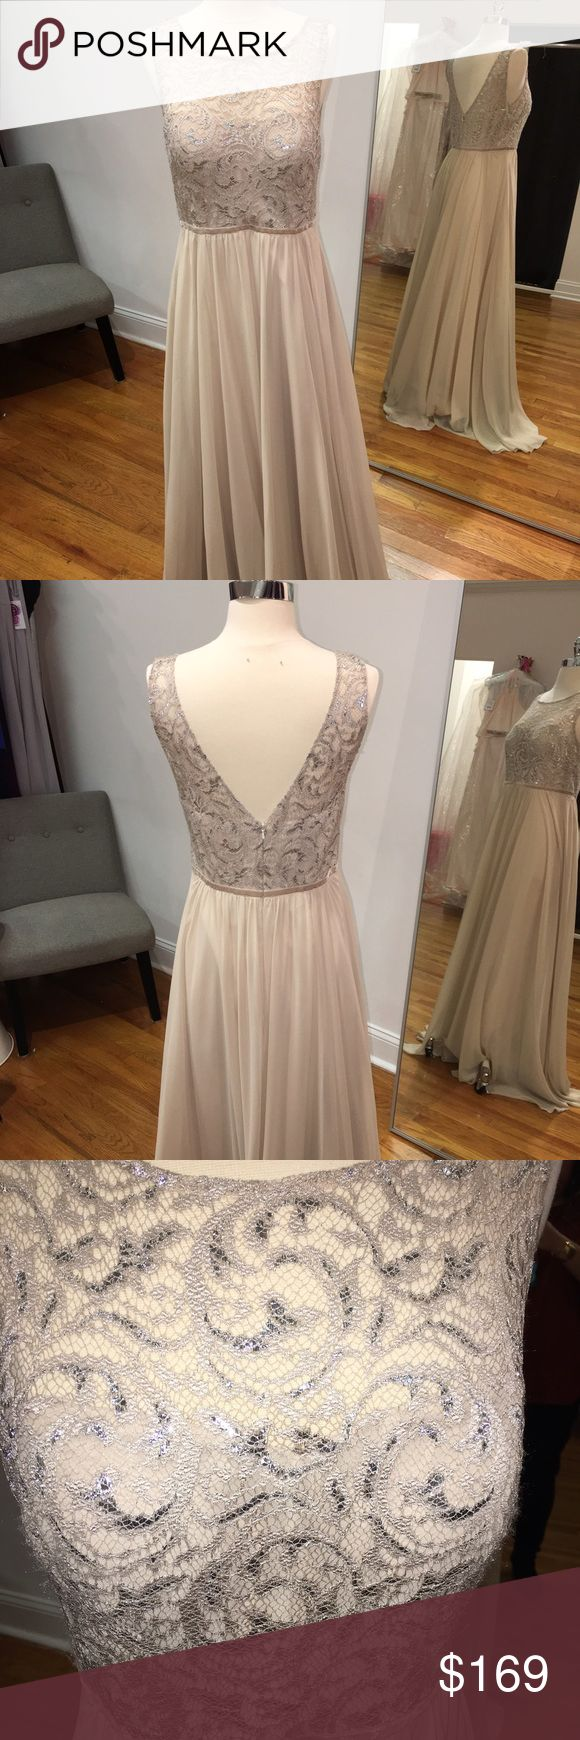 Jenny Yoo Gwyneth Dress, size 10 Jenny Yoo size 10 in sandstone, Kauber lace and Chiffon skirt.  Gently worn floor sample in good condition! Retailed for $325 and absolutely flattering on all body types! Gorgeous in person! Jenny Yoo Dresses Maxi